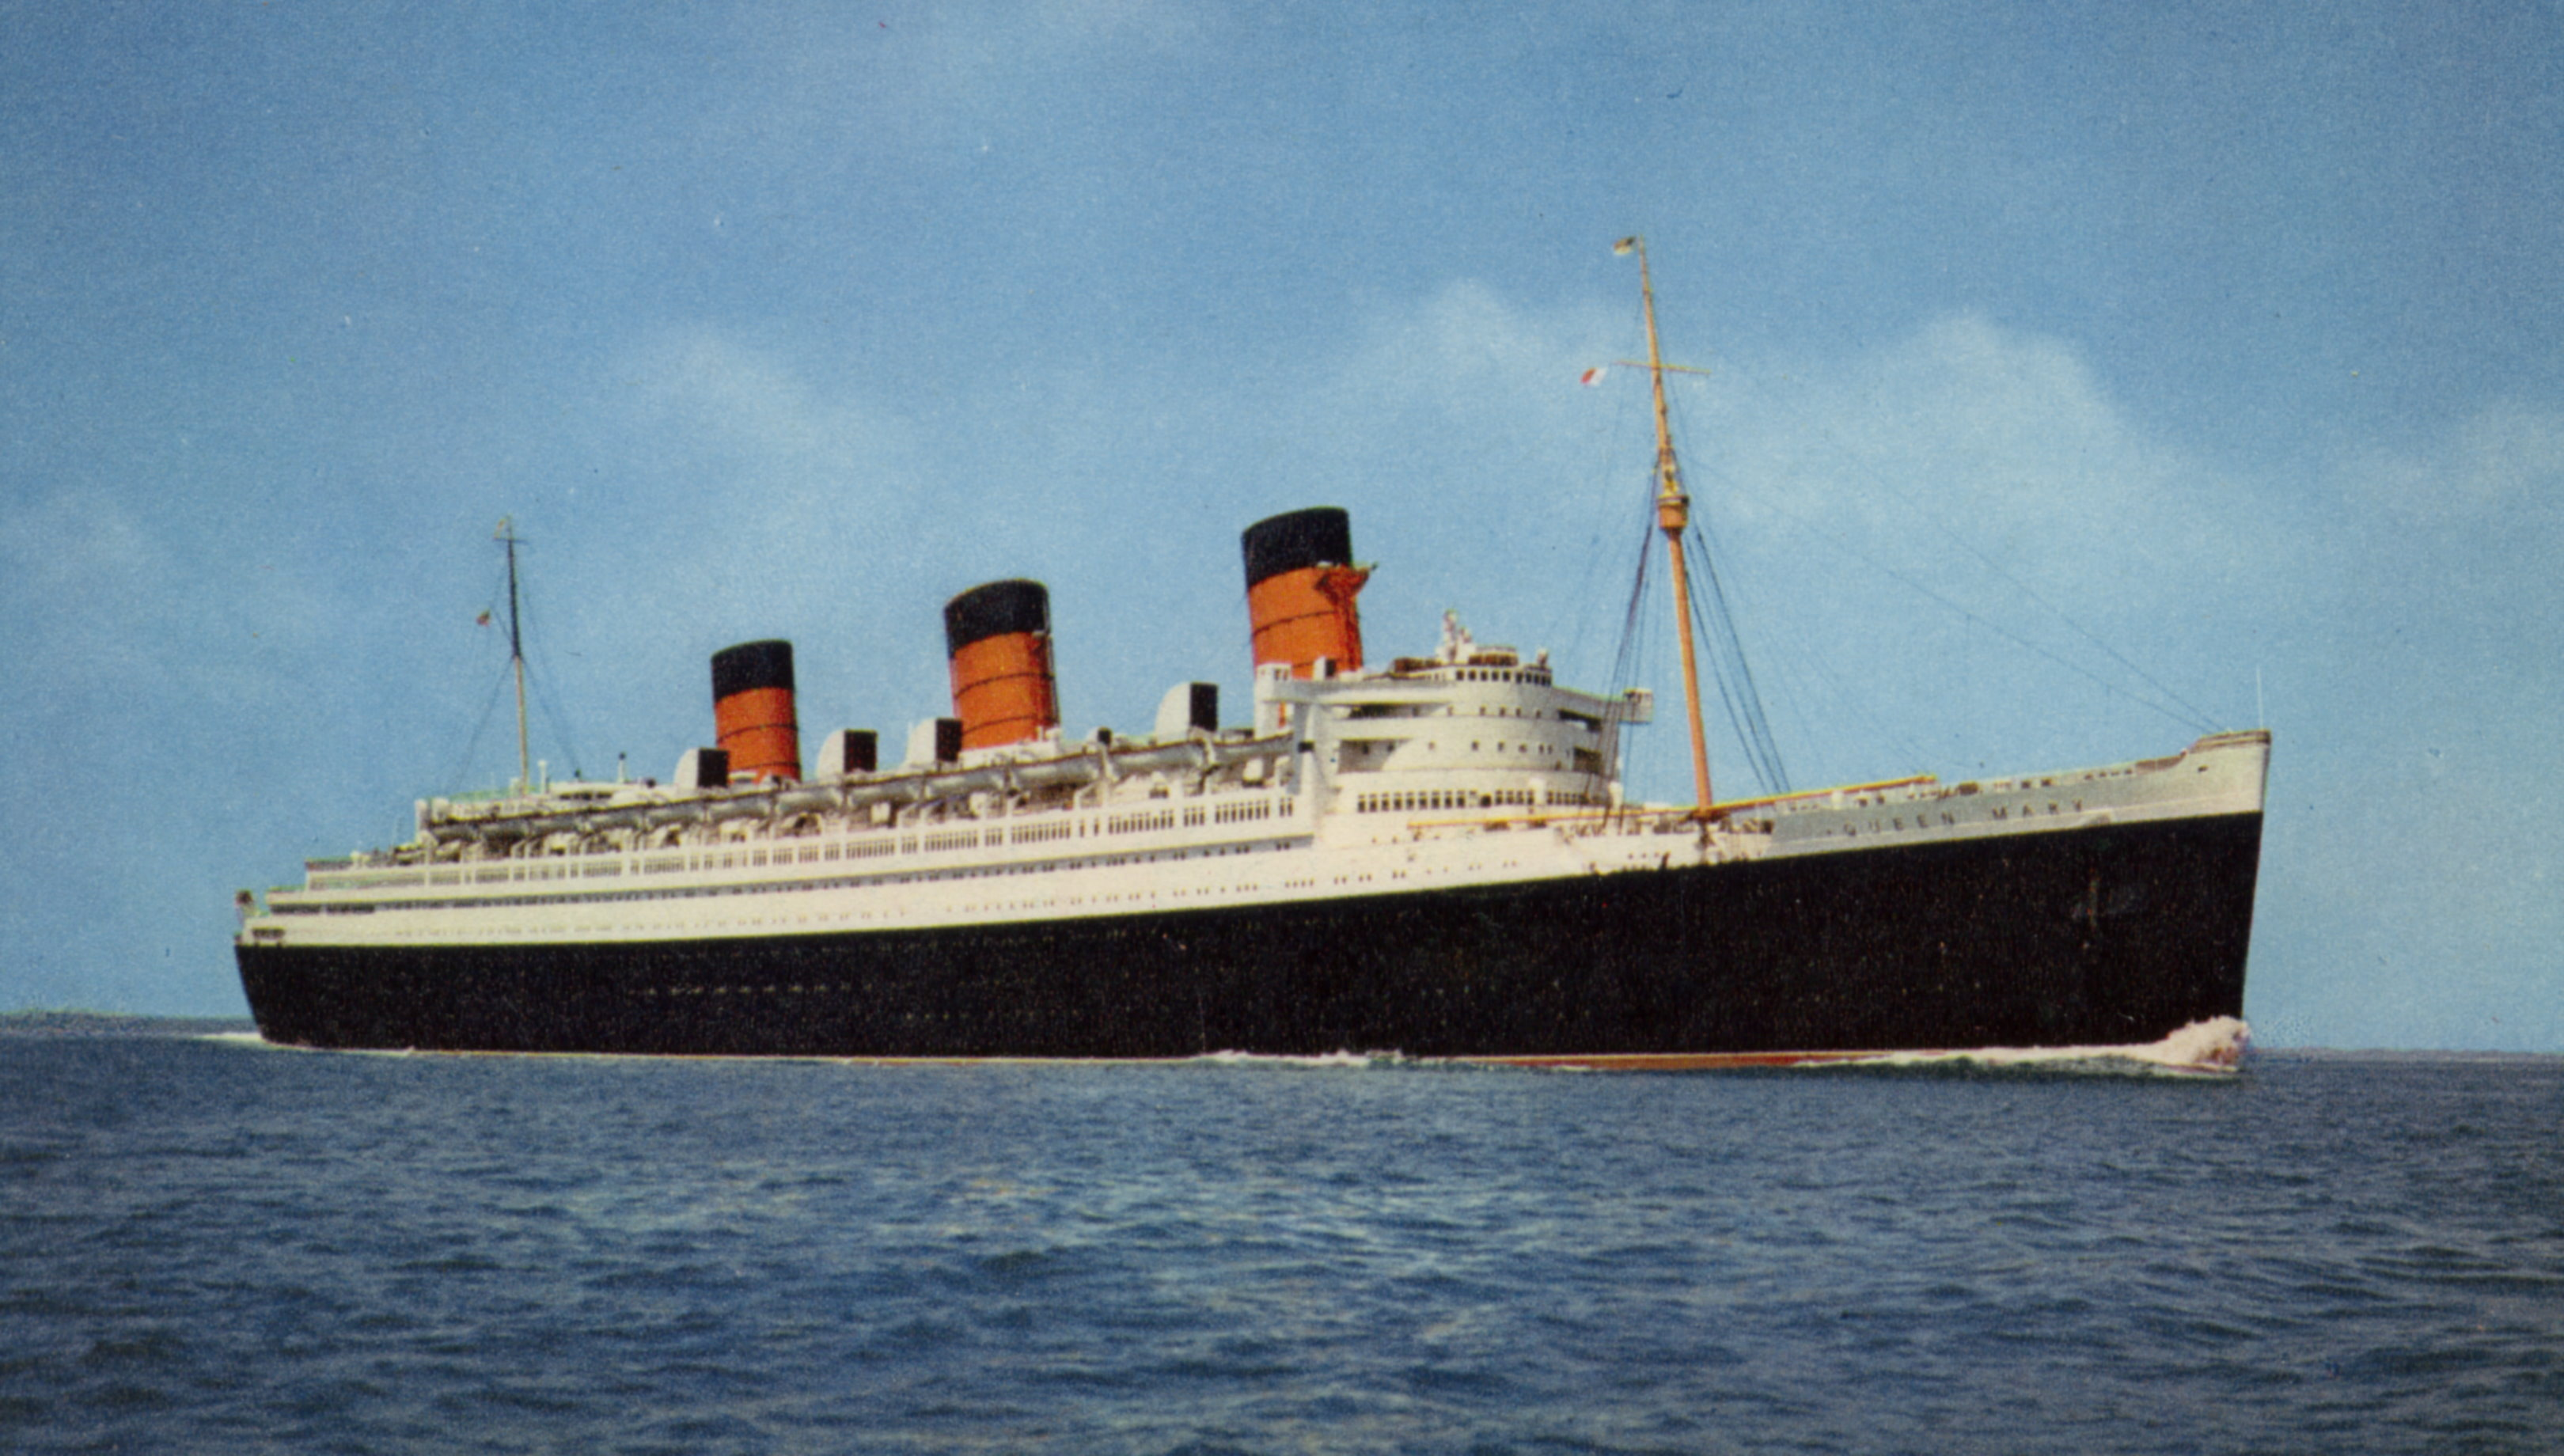 RMS Queen Mary - Her Career